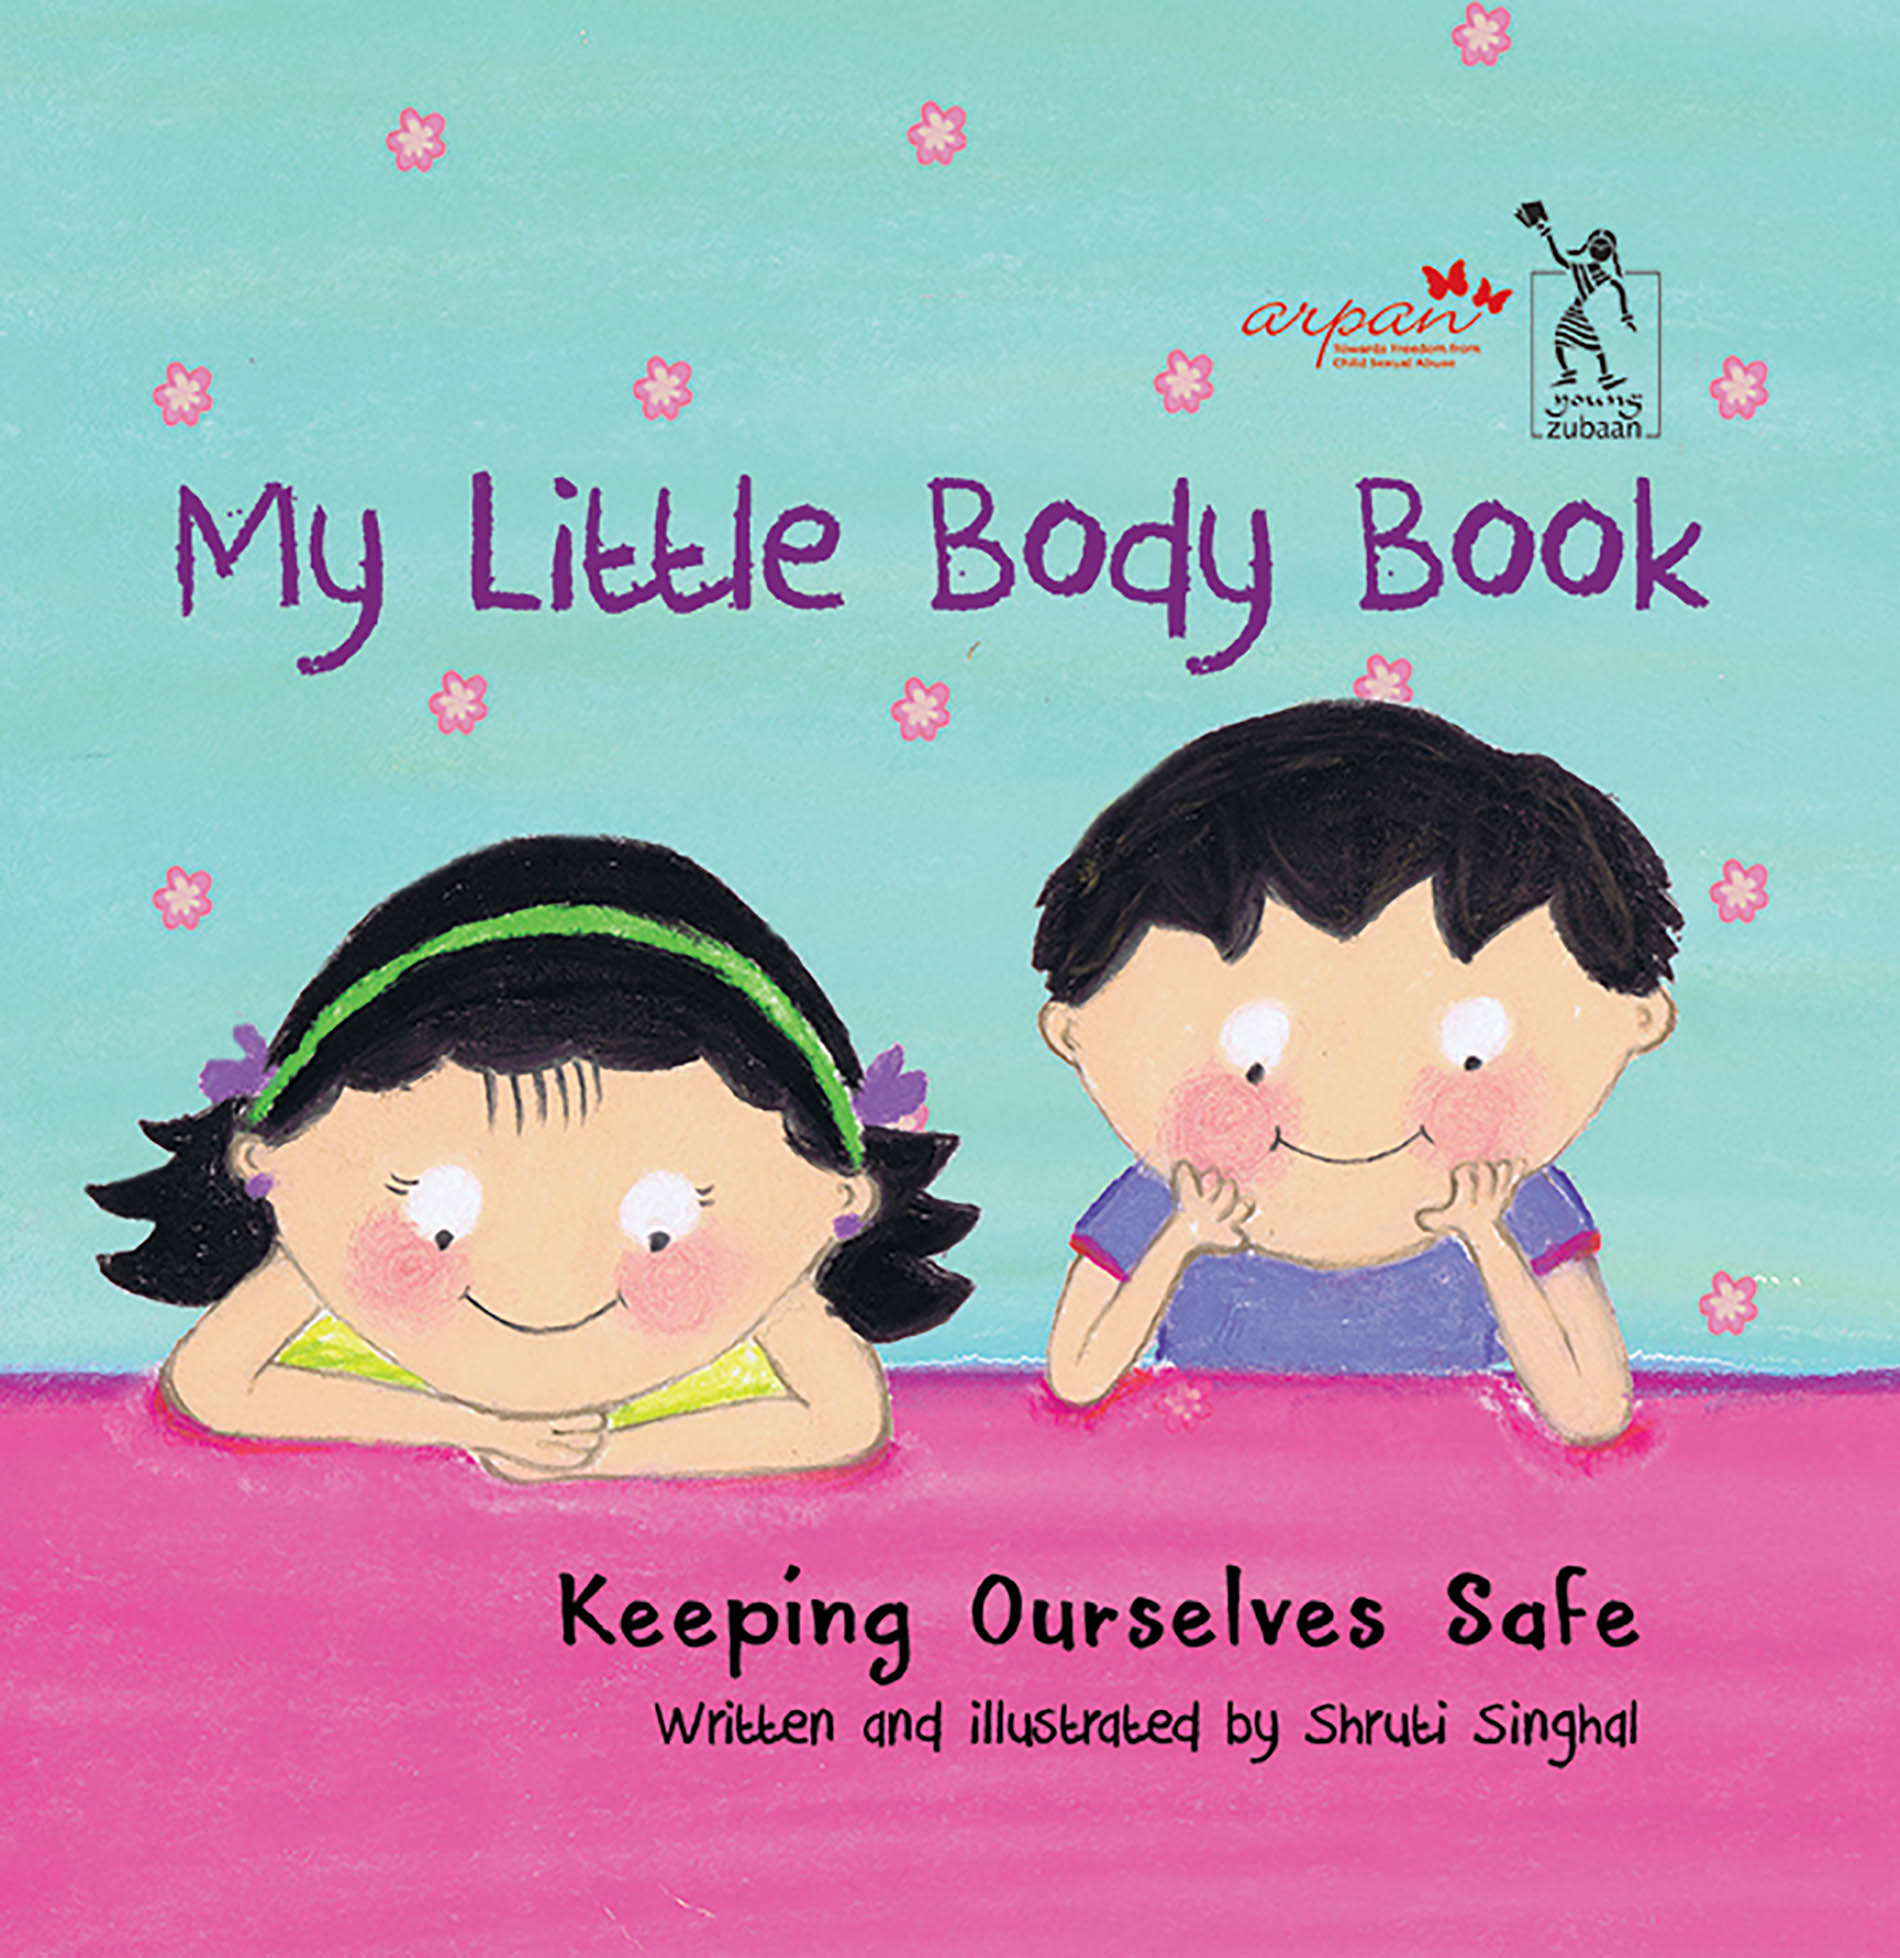 My Little Body Book Keeping Ourselves Safe